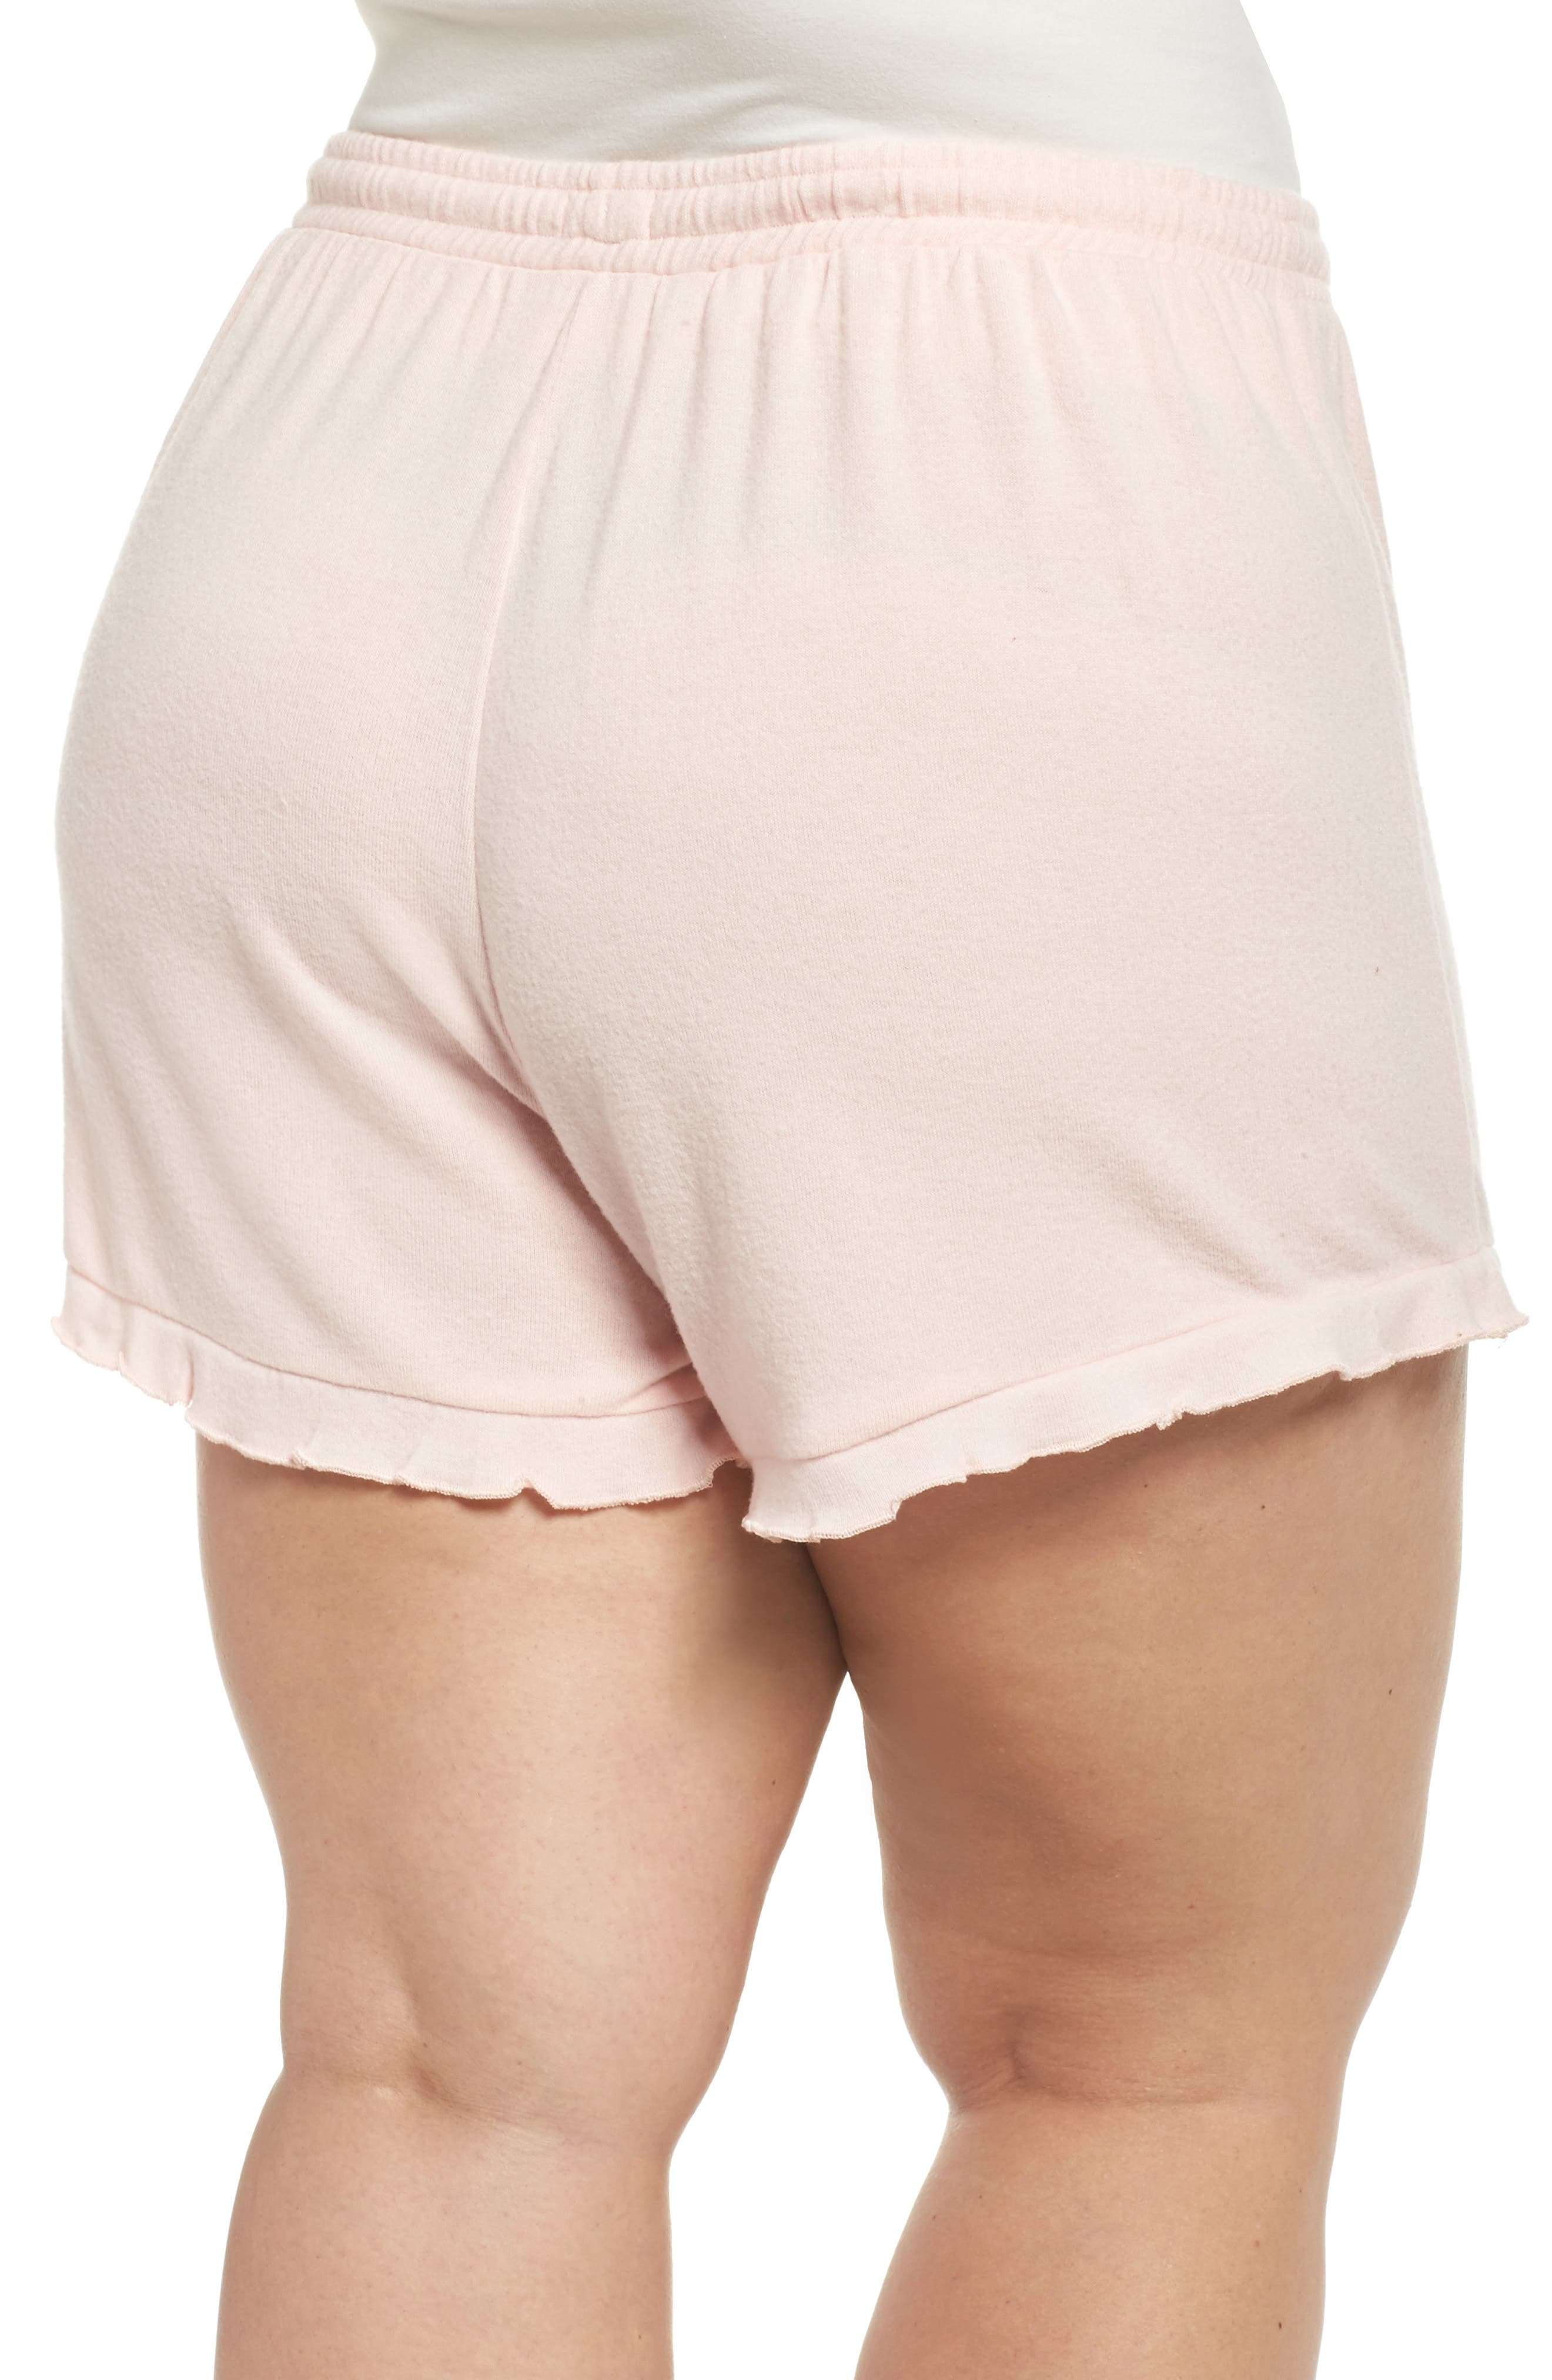 Ruffle Lounge Shorts,                             Alternate thumbnail 2, color,